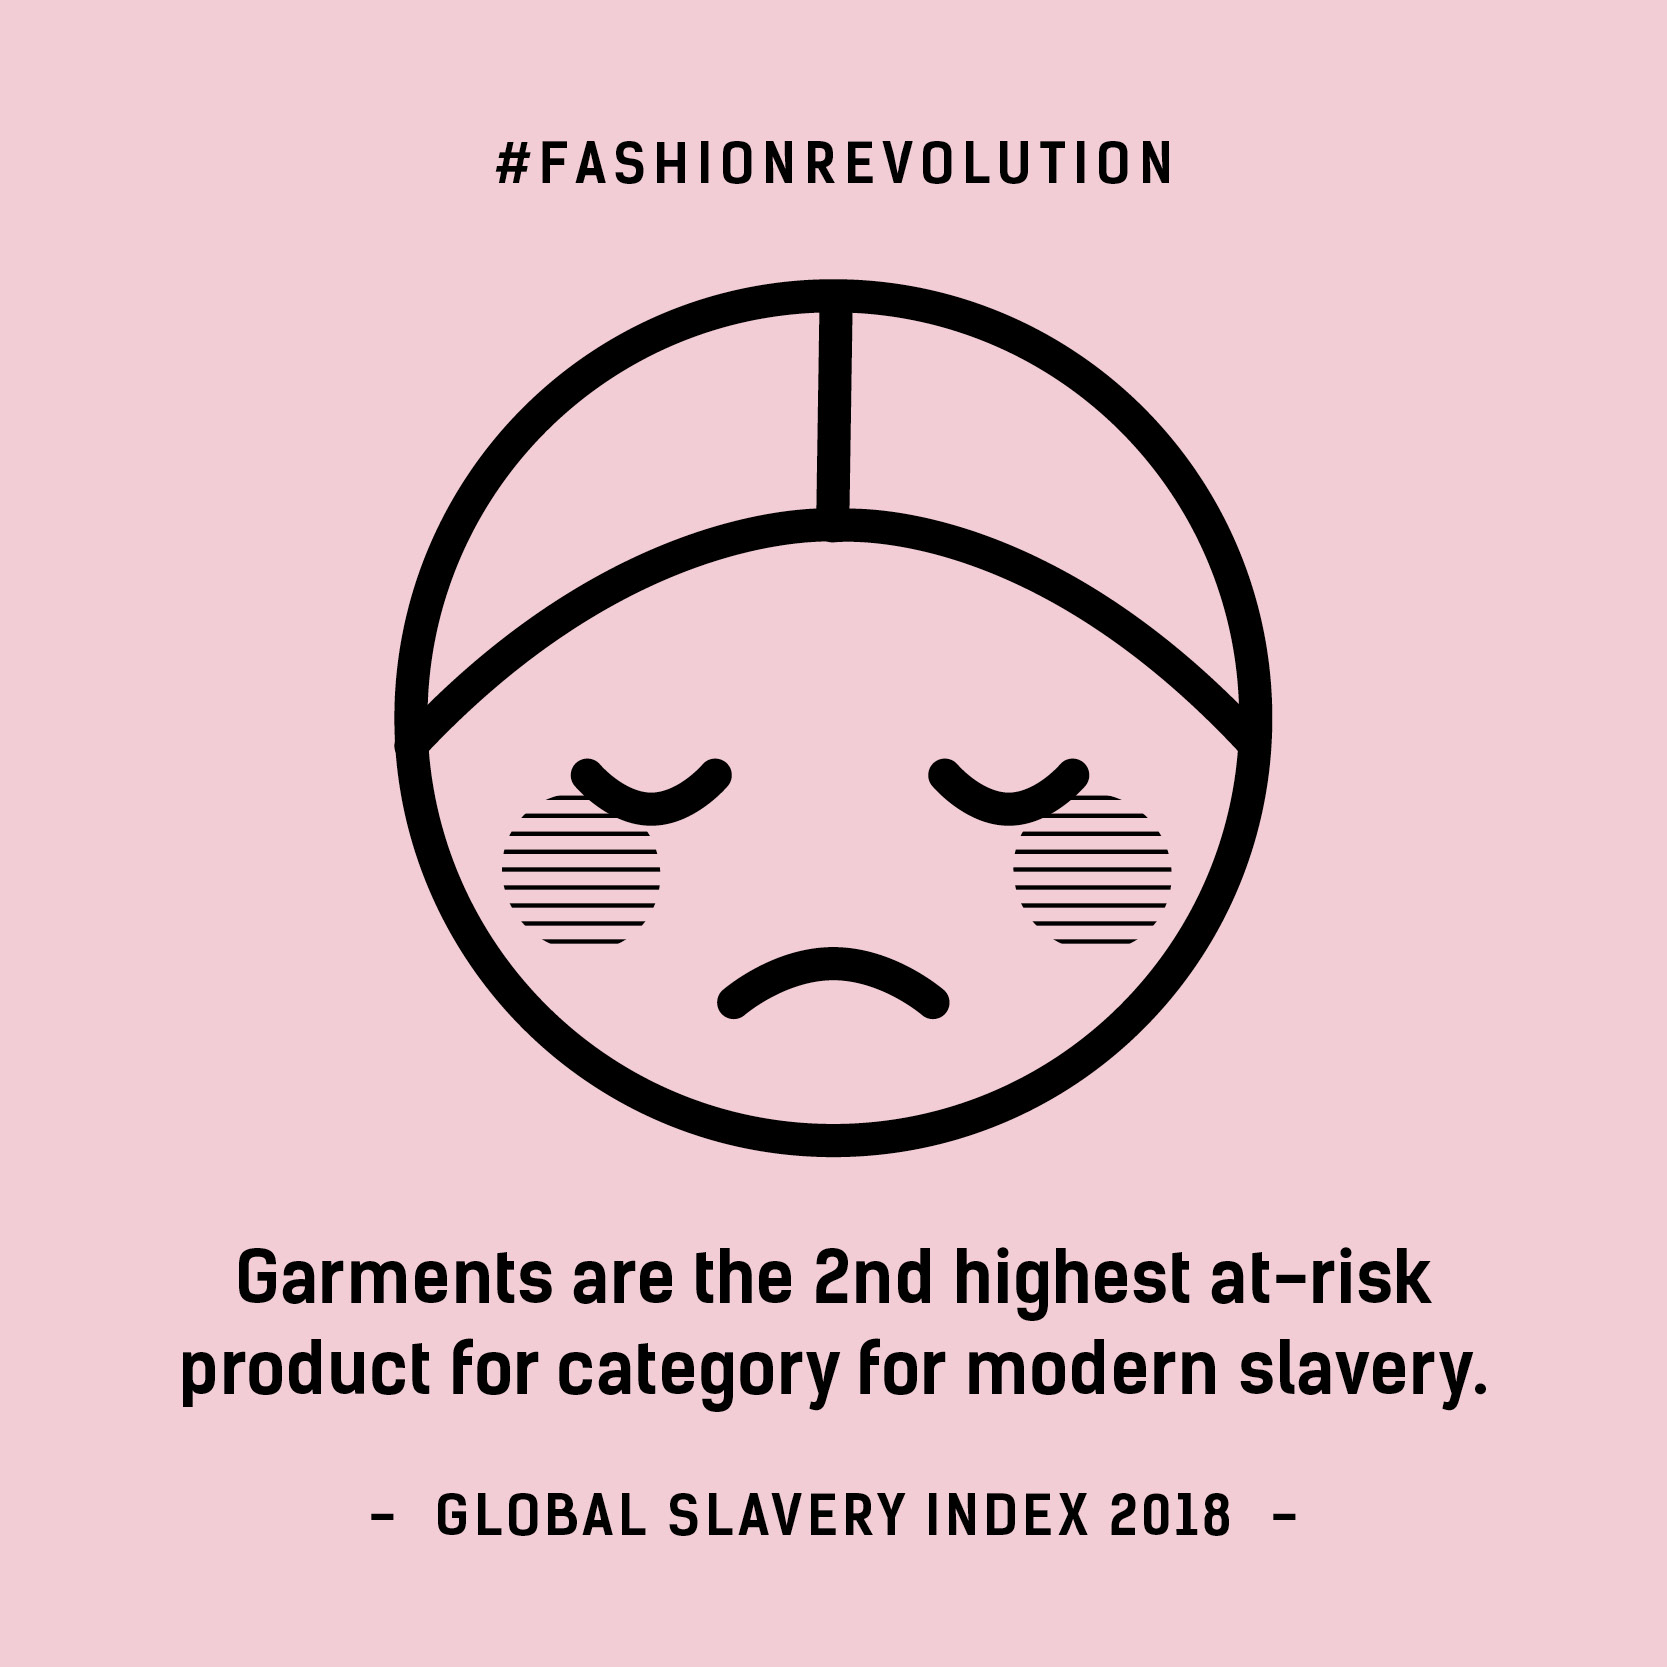 Fashion Revolution: The garment industry is at risk for modern slavery